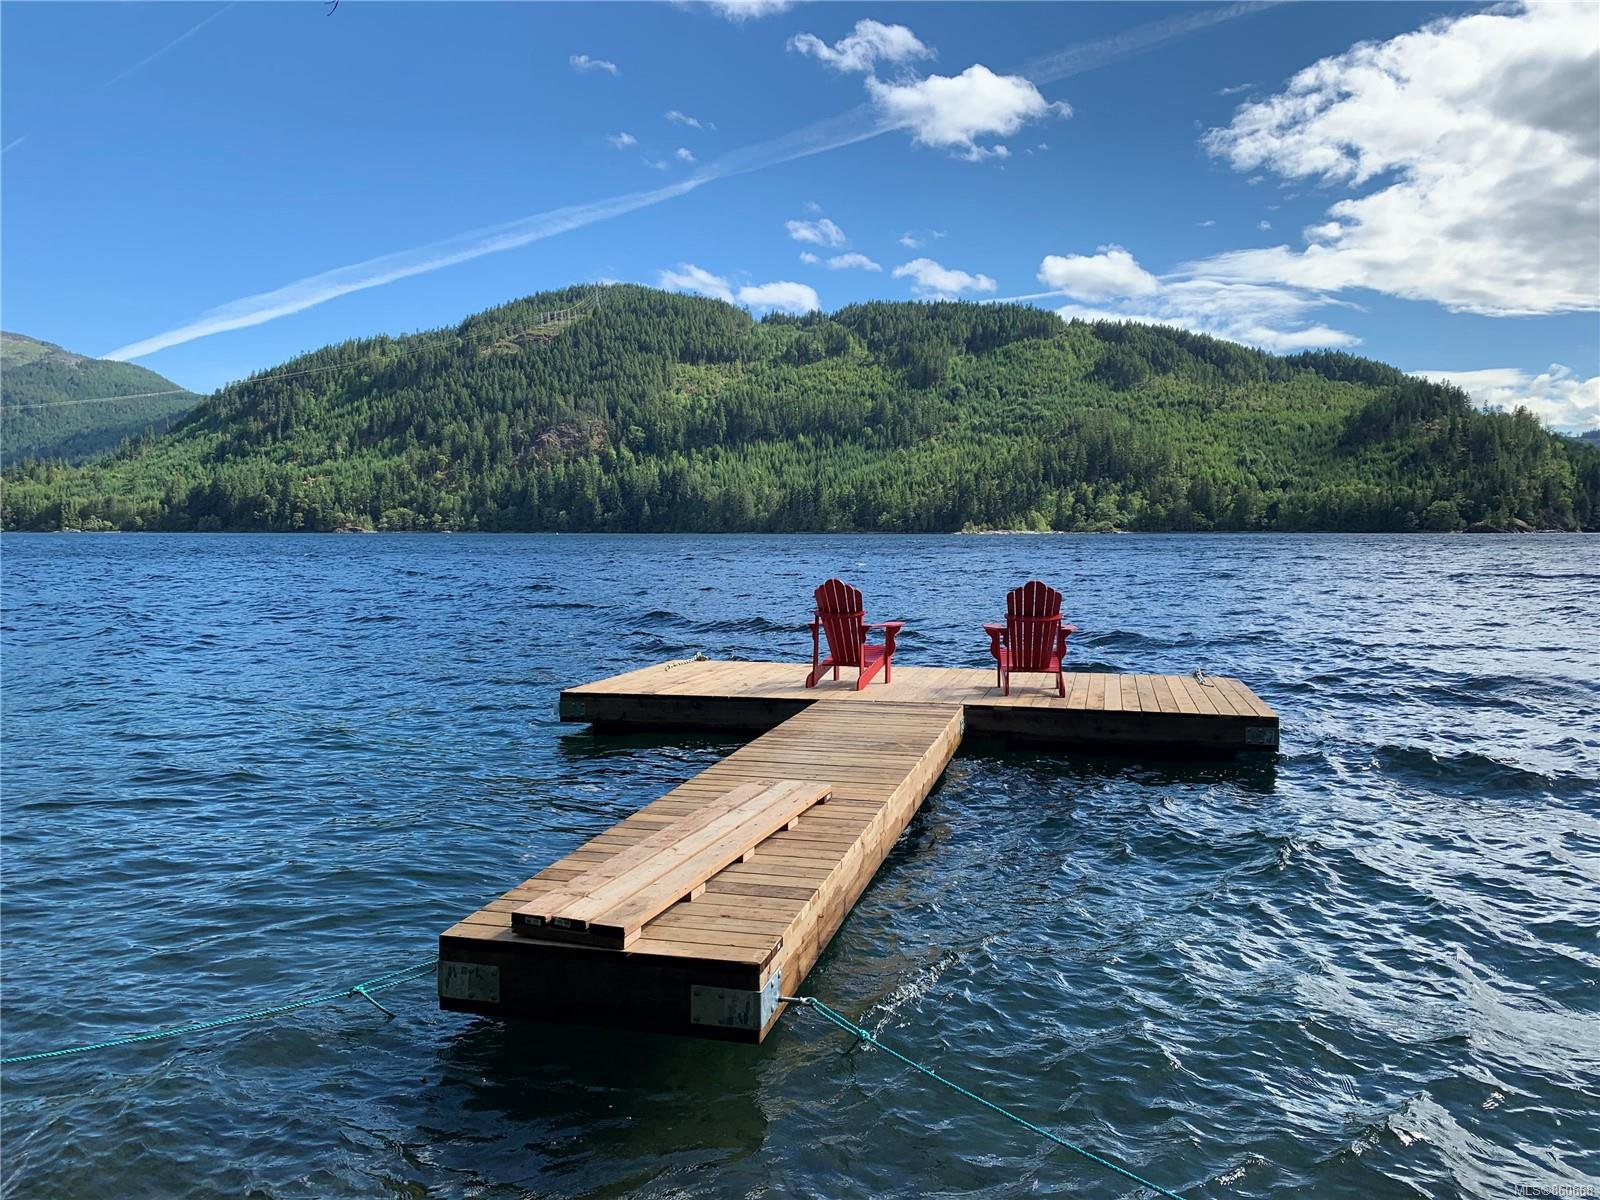 Main Photo: 3712 Horne Lake Caves Rd in : PQ Qualicum North Land for sale (Parksville/Qualicum)  : MLS®# 860668